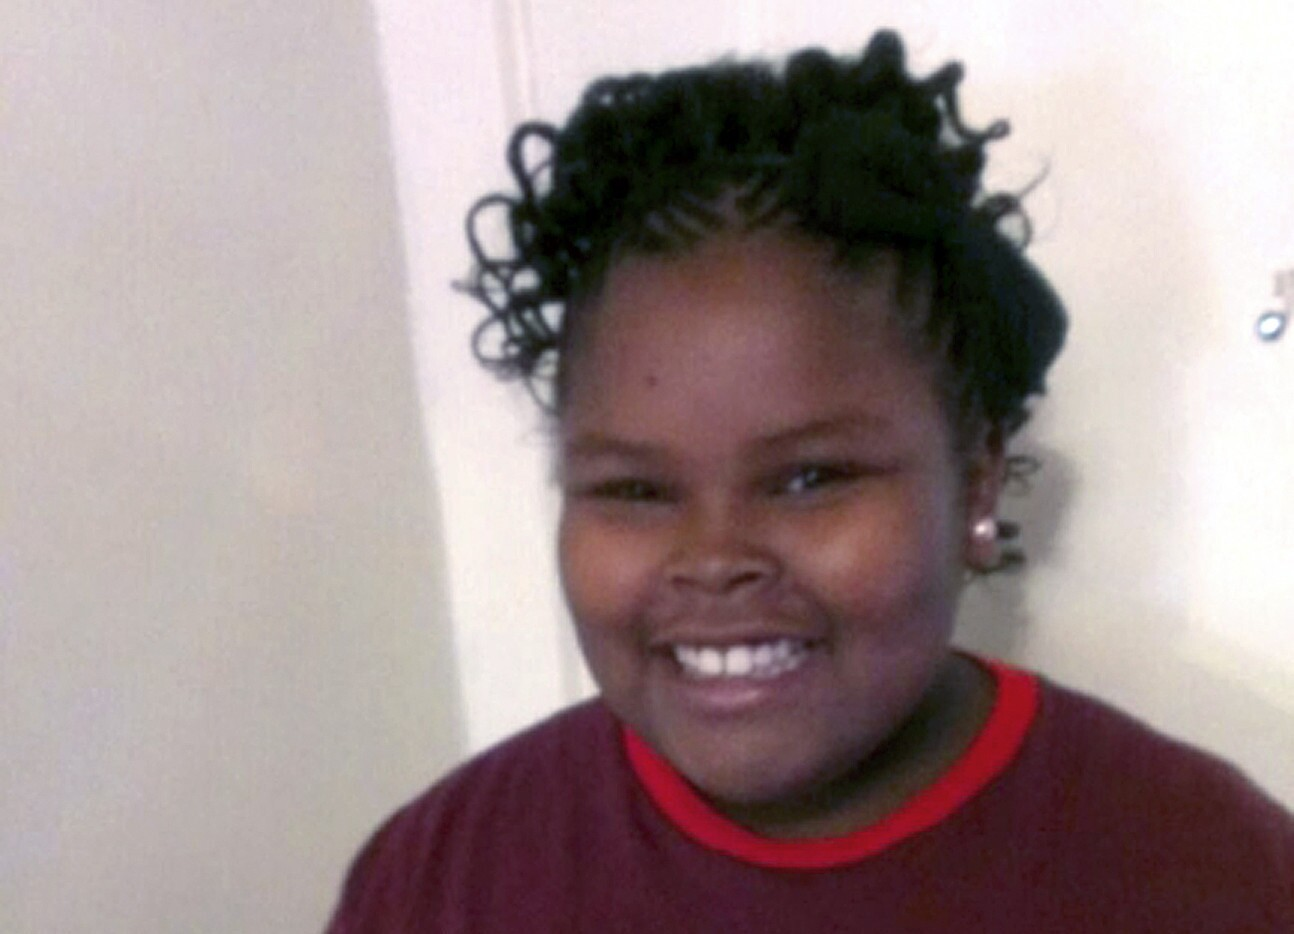 Jahi McMath, shown in an undated photo provided by her family.